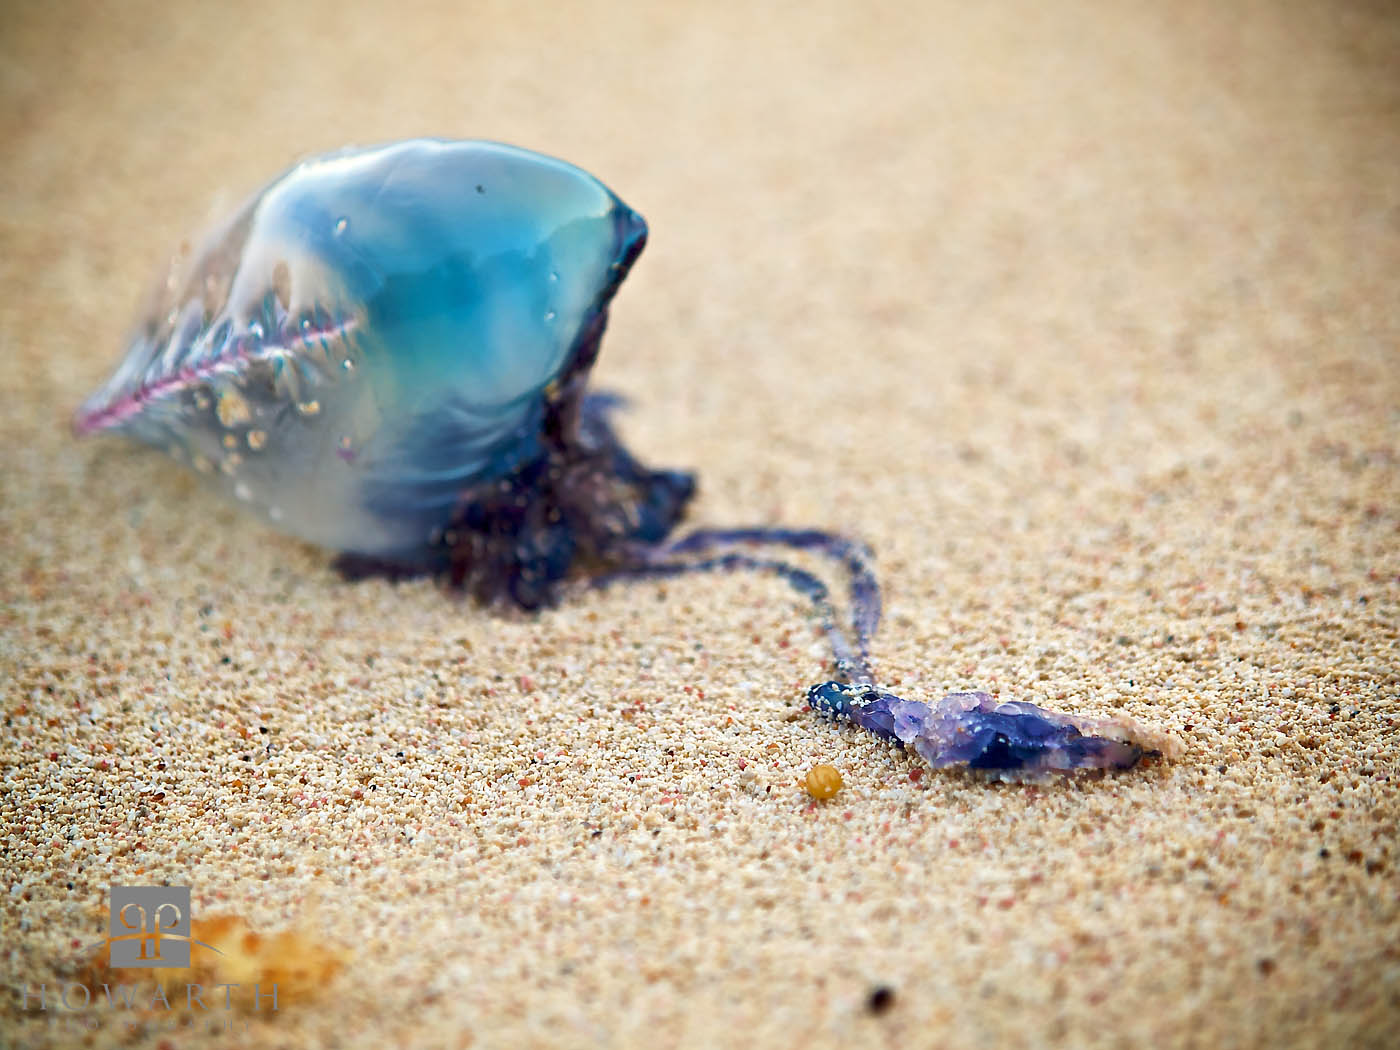 A portuguese man of war washed up on the beach